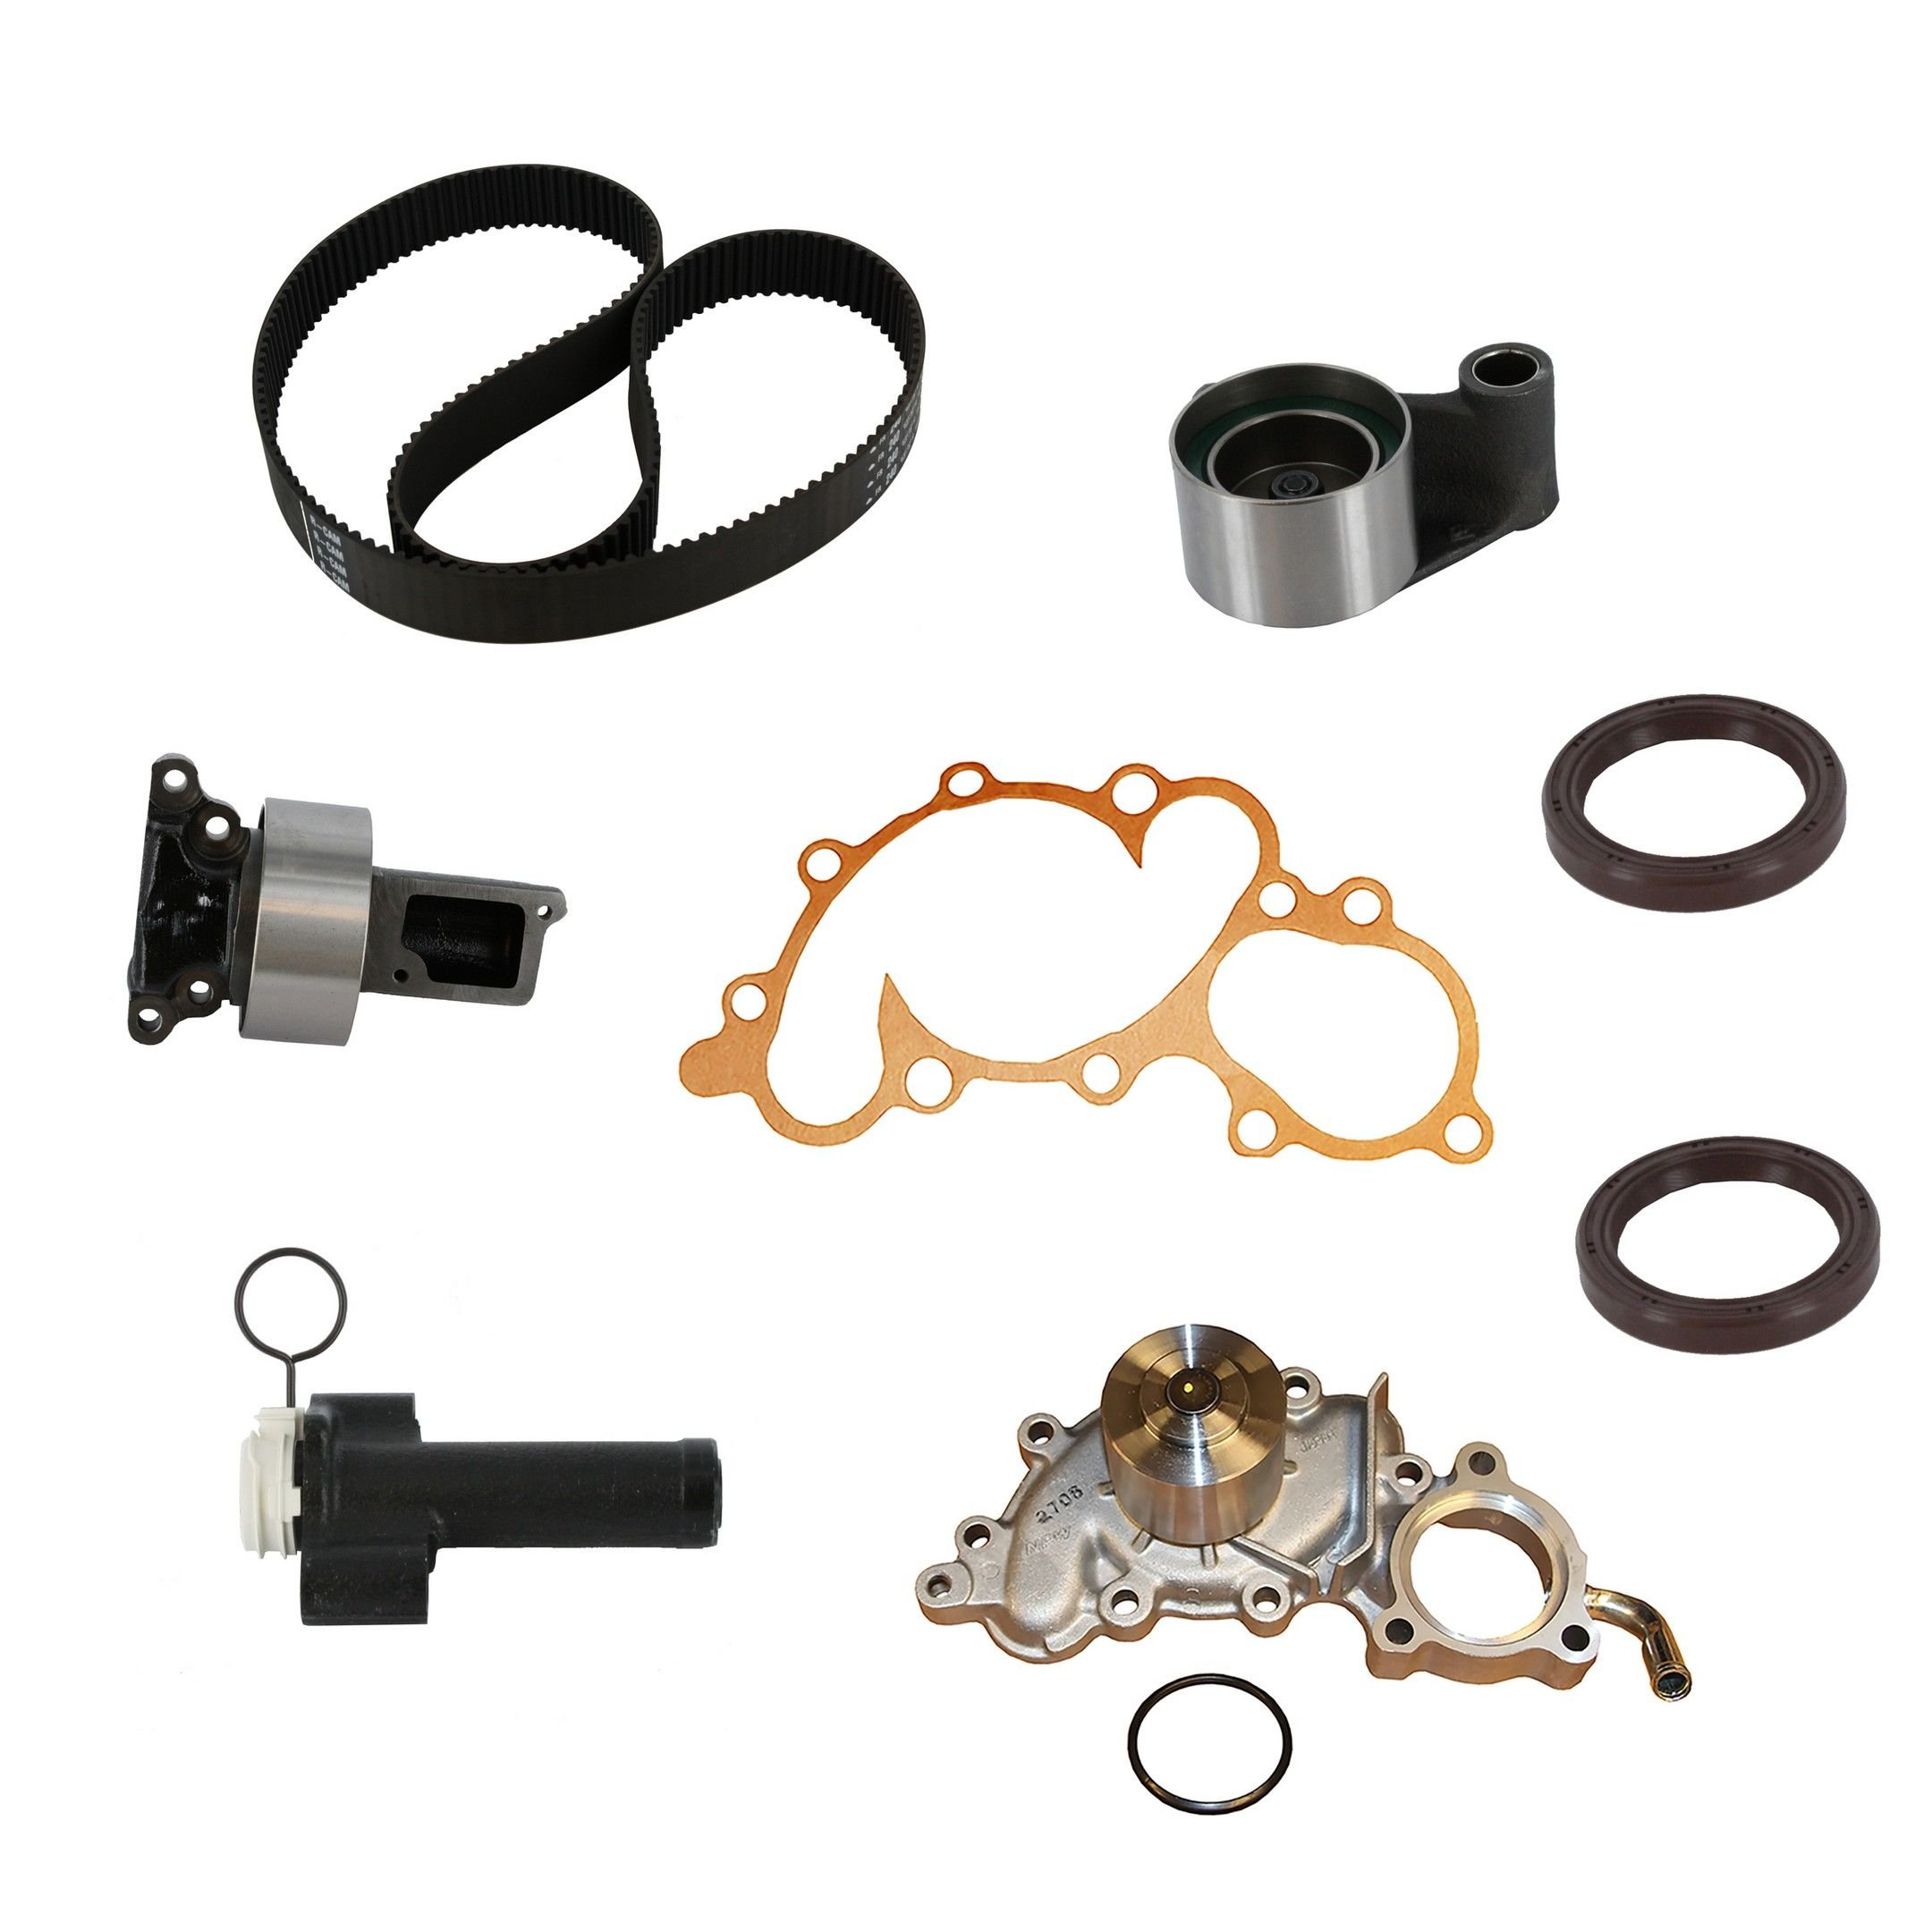 Toyota 4runner Engine Timing Belt Kit With Water Pump Replacement For 1993 6 Cyl 30l Crp Pp240lk1 Pro Series Plus Contitech Includes Hyd Tensioner